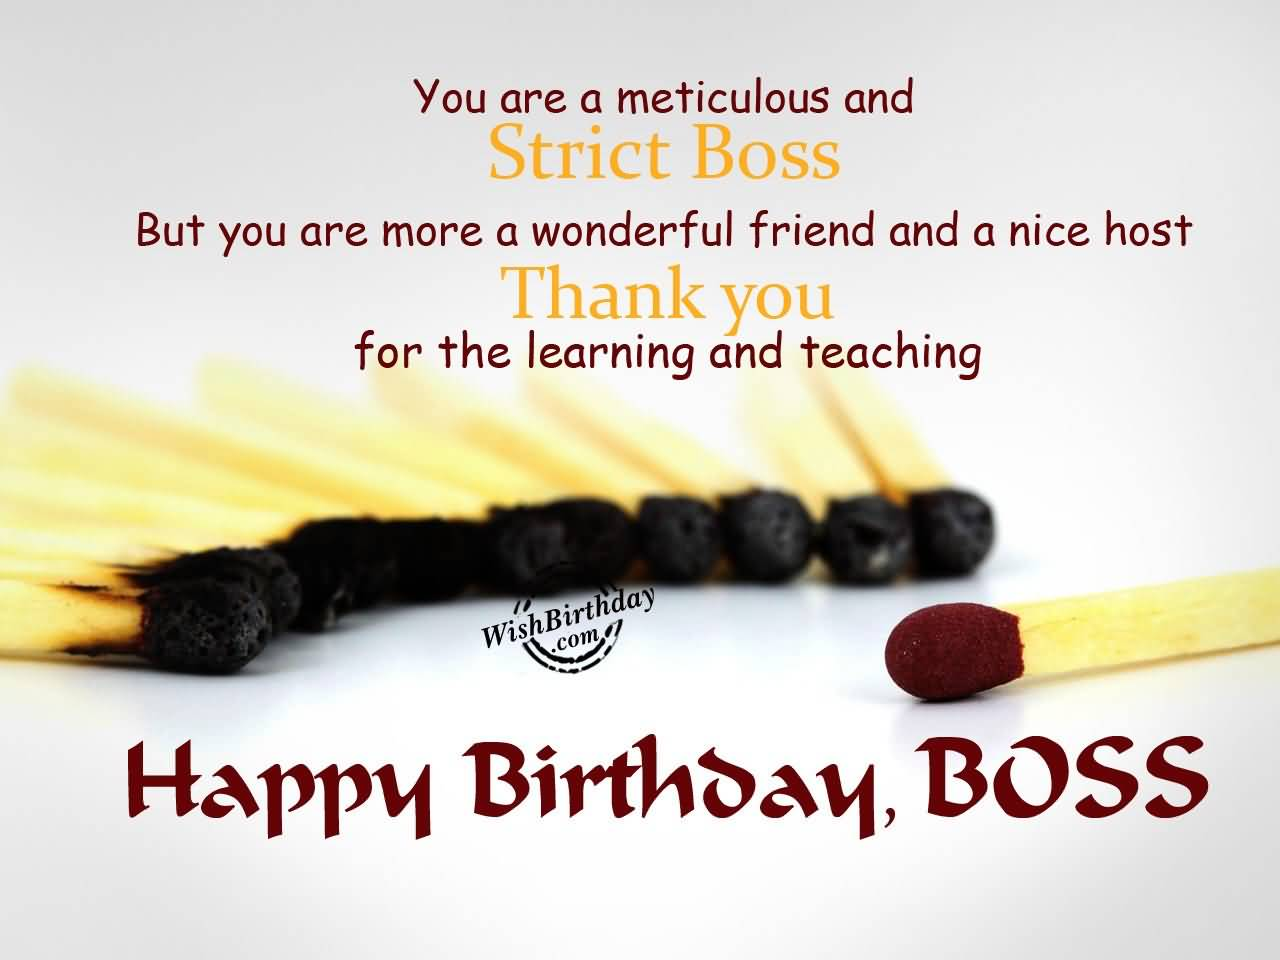 birthday wishes boss greeting ; You-Are-A-Meticulos-And-Stric-Boss-Thanks-You-Happy-Birthday-Boss